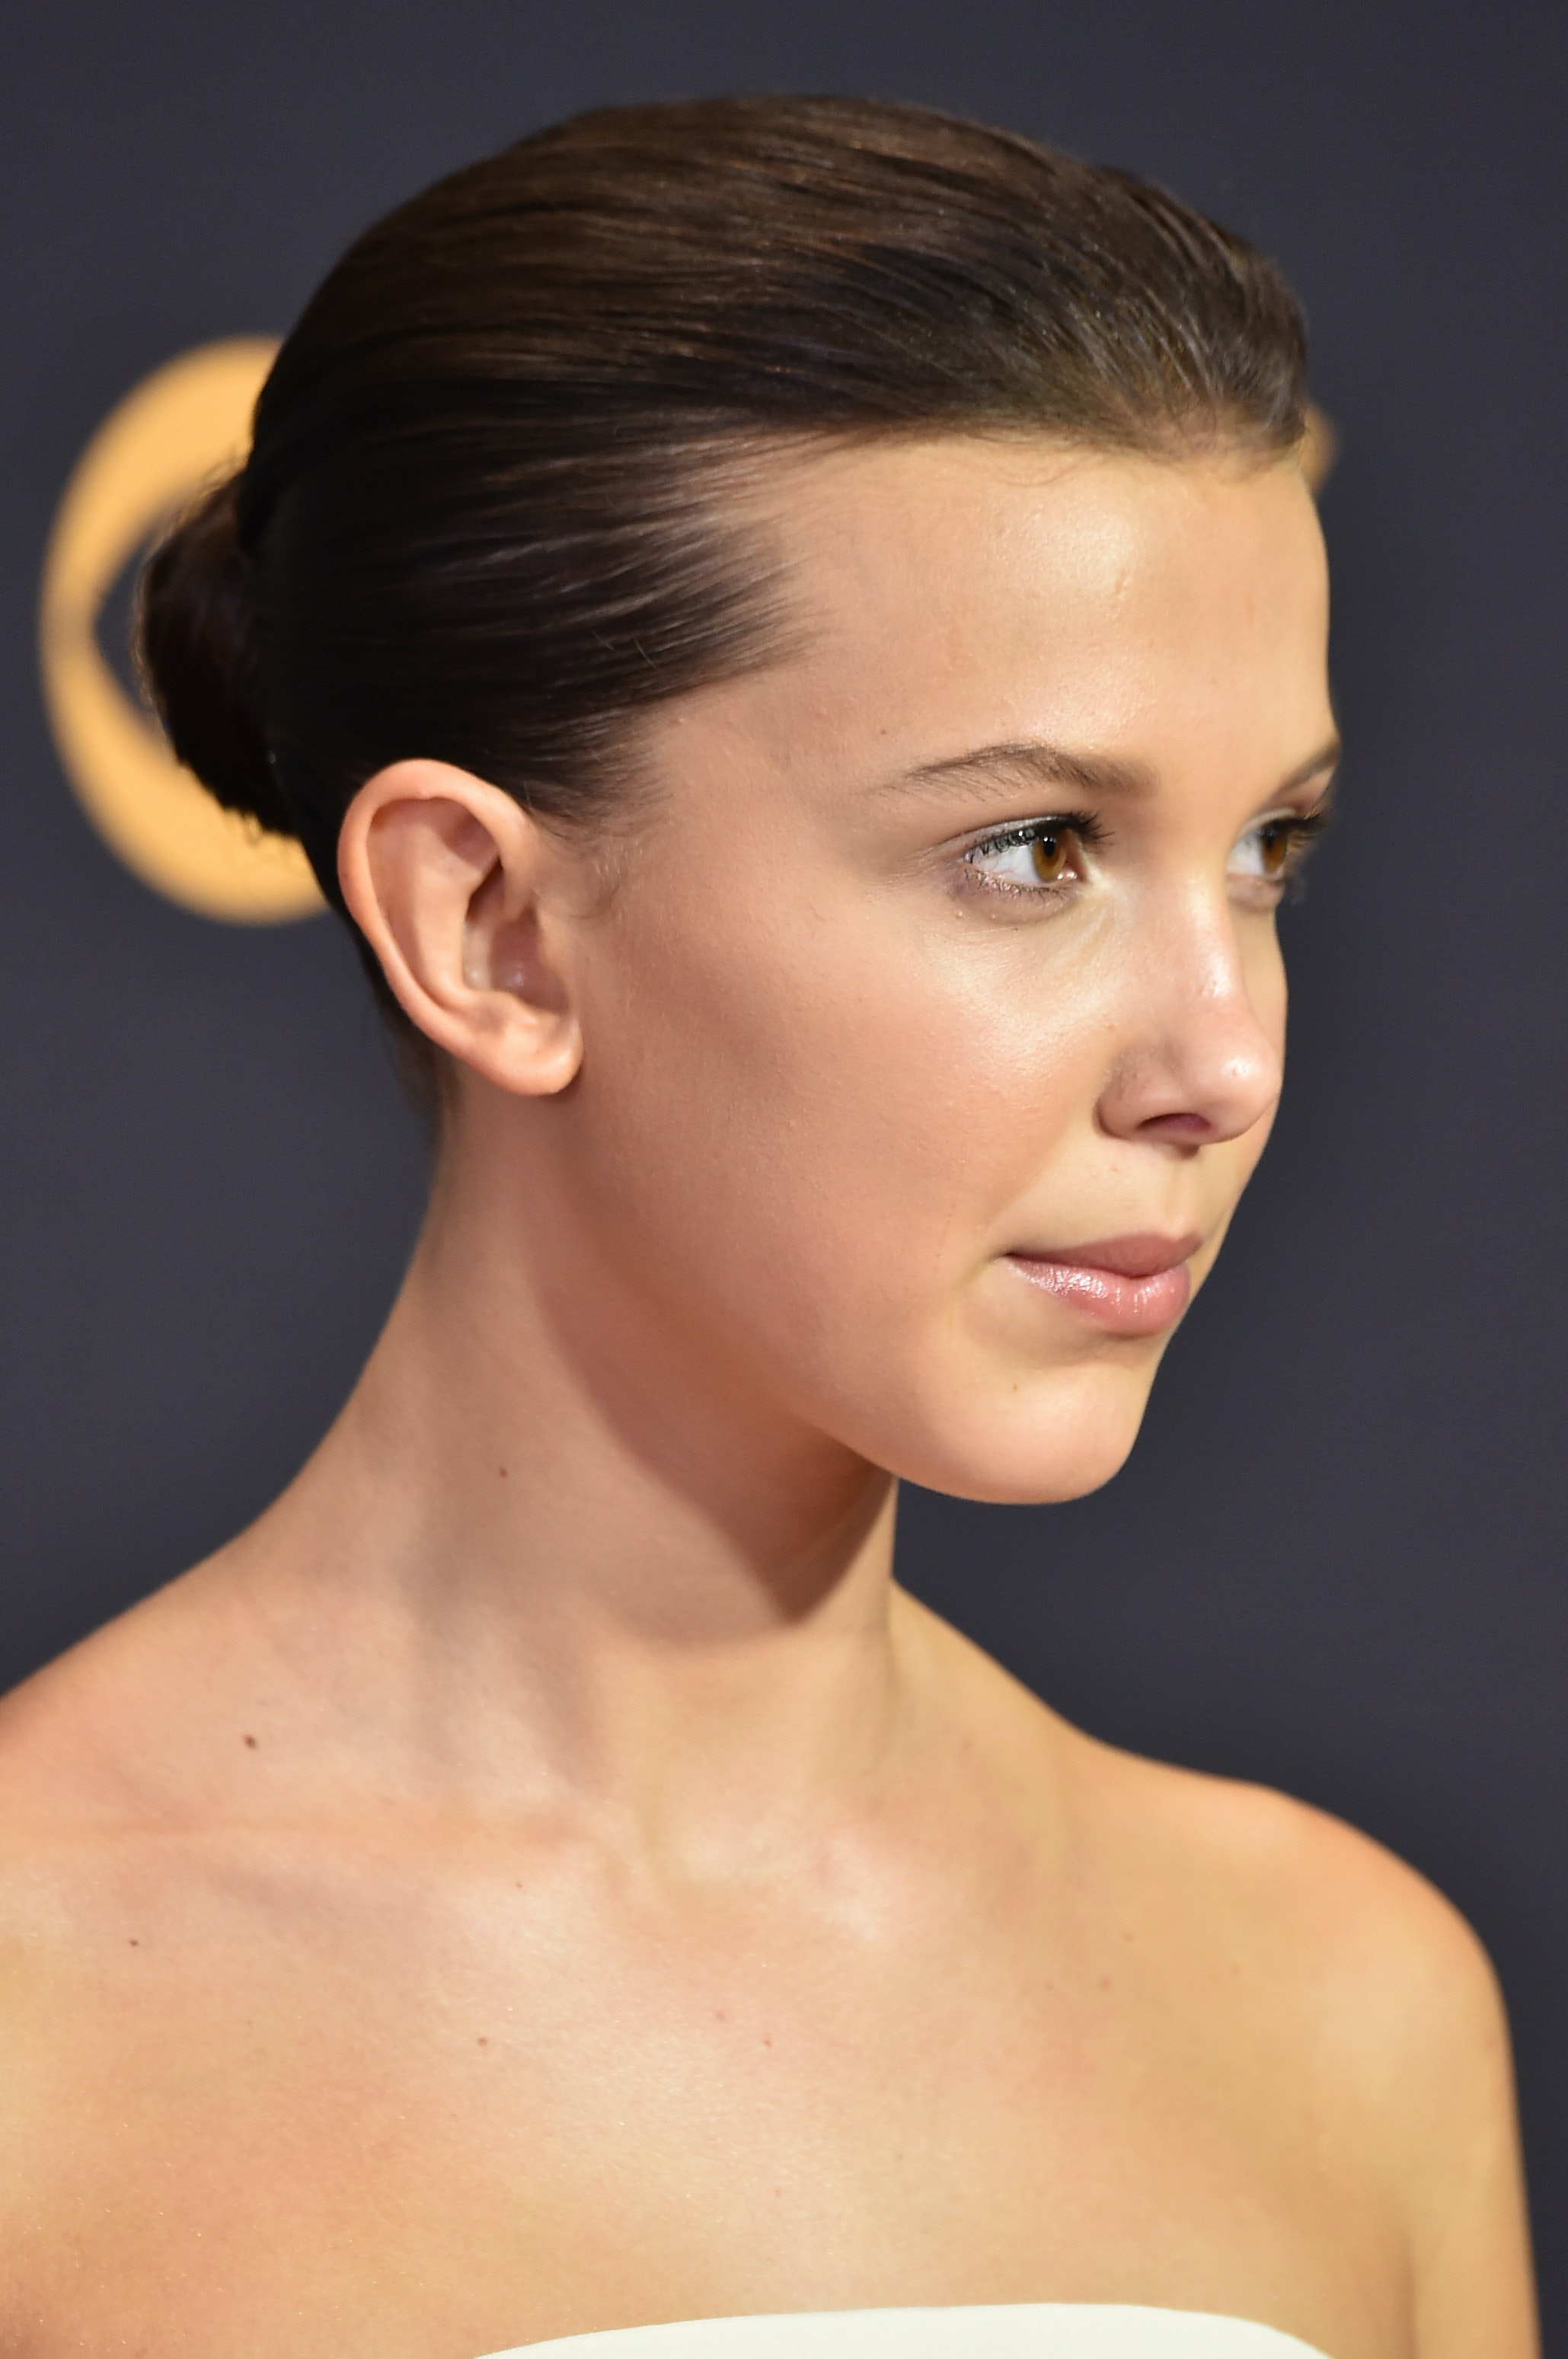 is millie bobby brown's long hair real? the 'stranger things